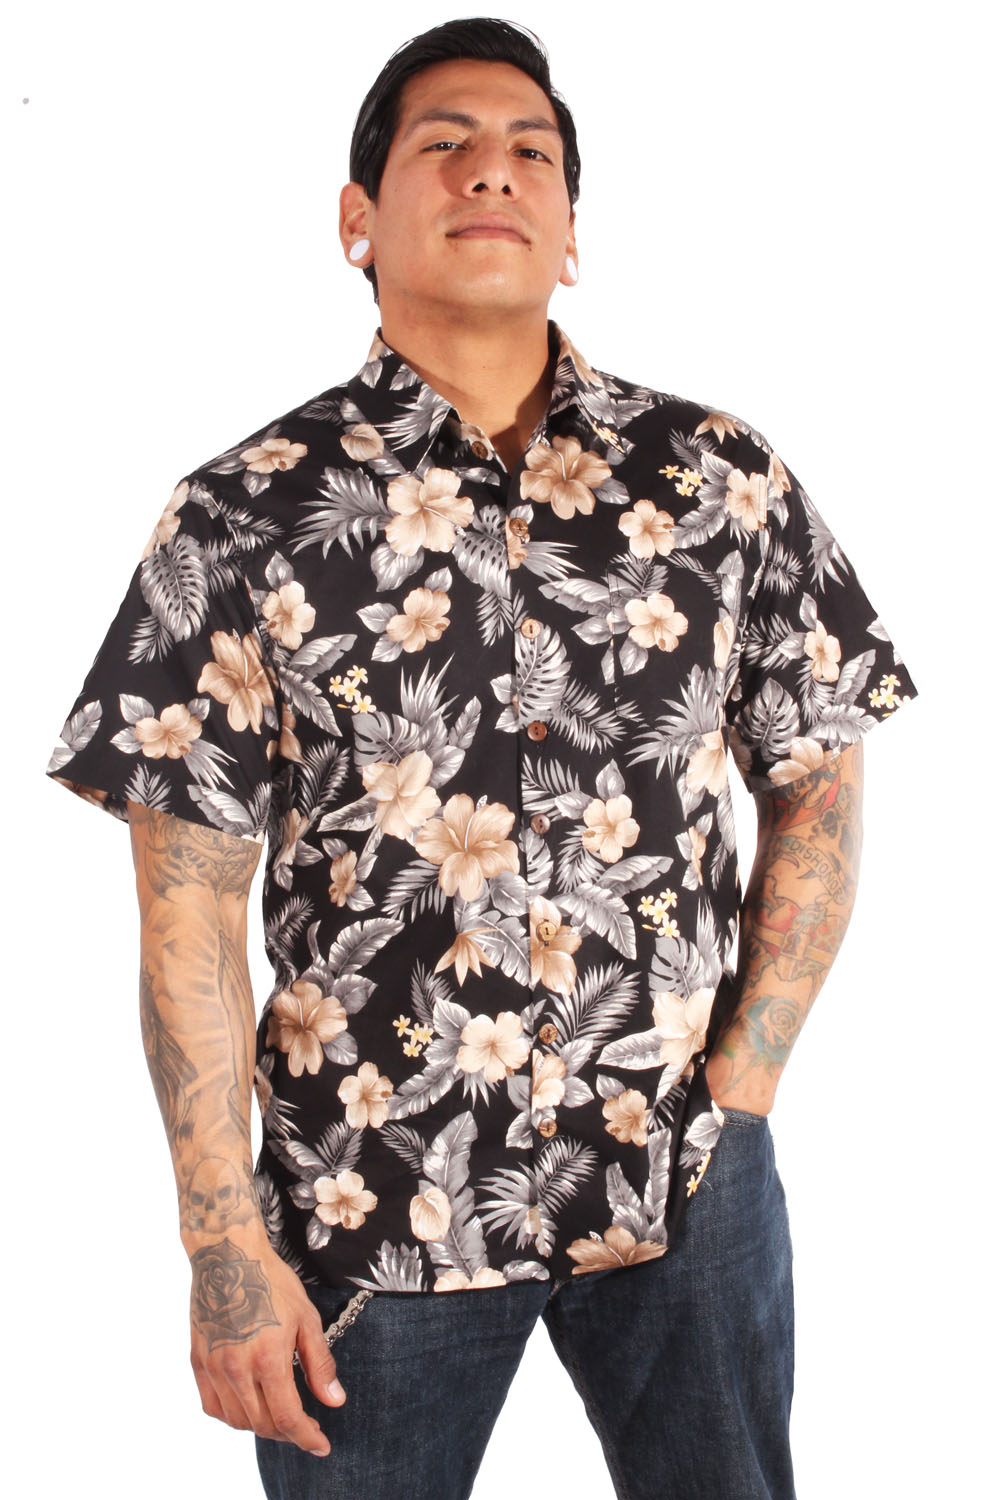 retro Hawaii Blumen Hibiskus rockabilly Hawaiihemd Shirt schwarz